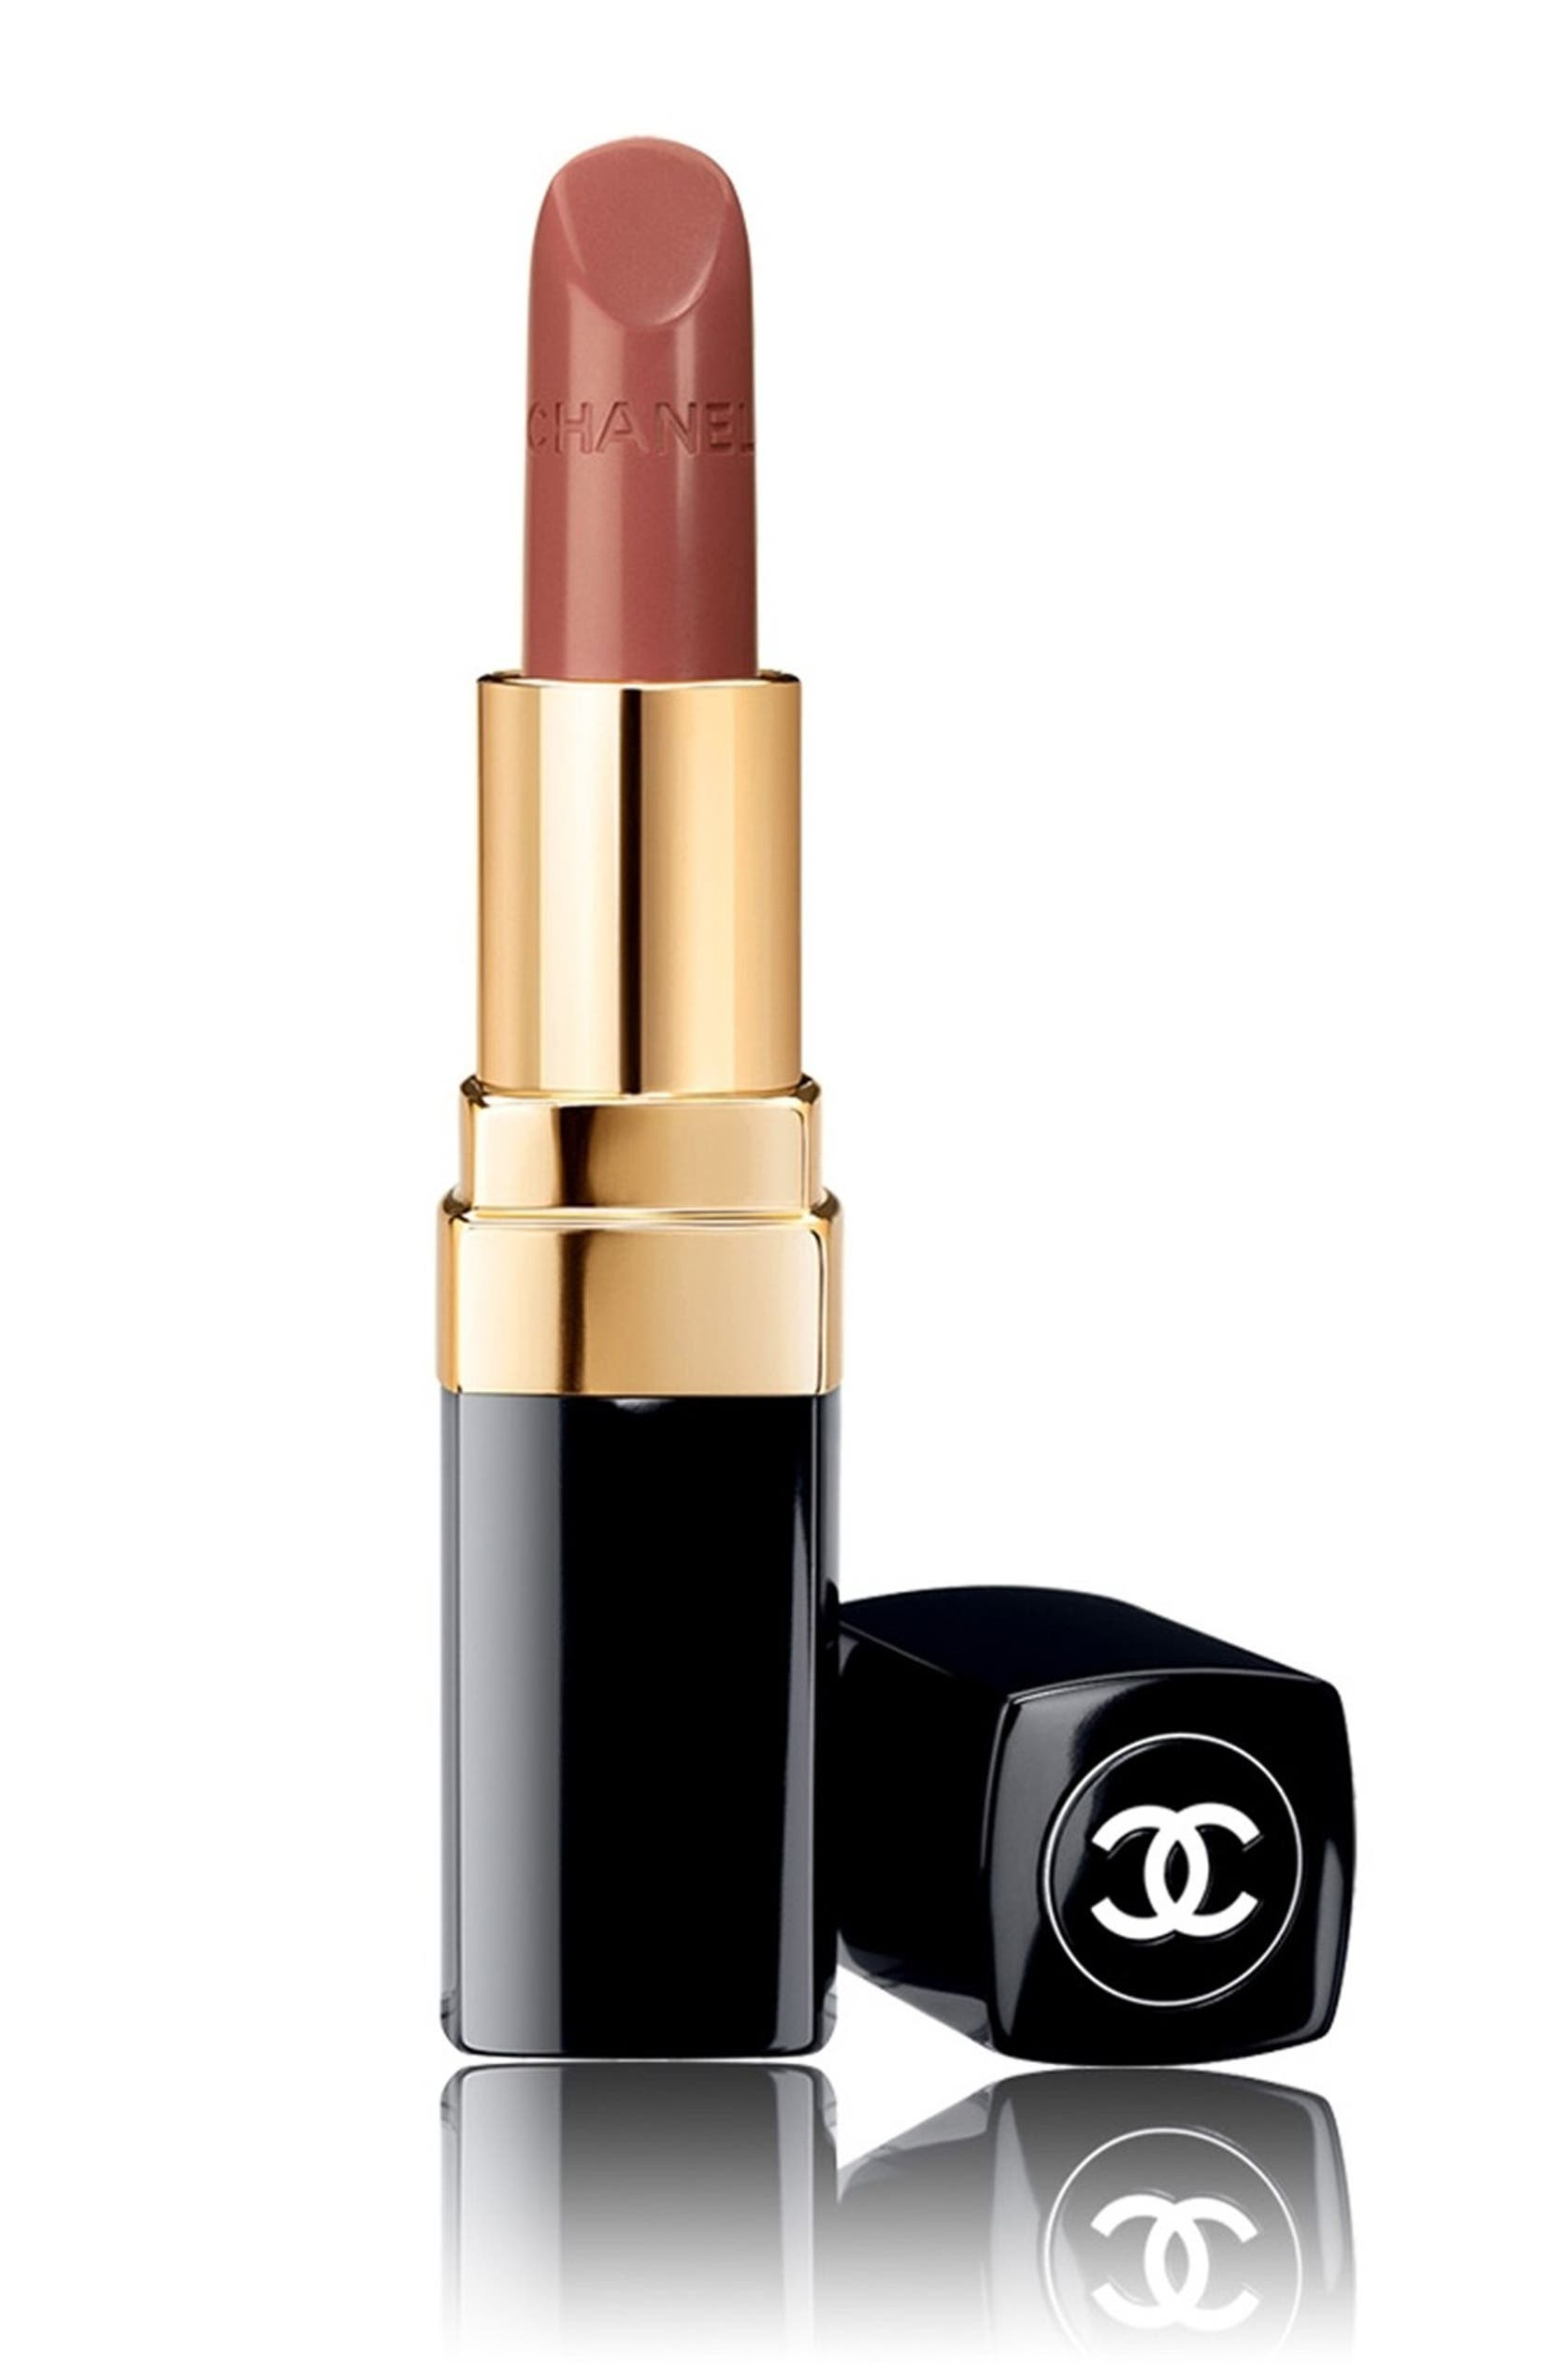 Chanel Rouge Coco Ultra Hydrating Lip Colour Nordstrom